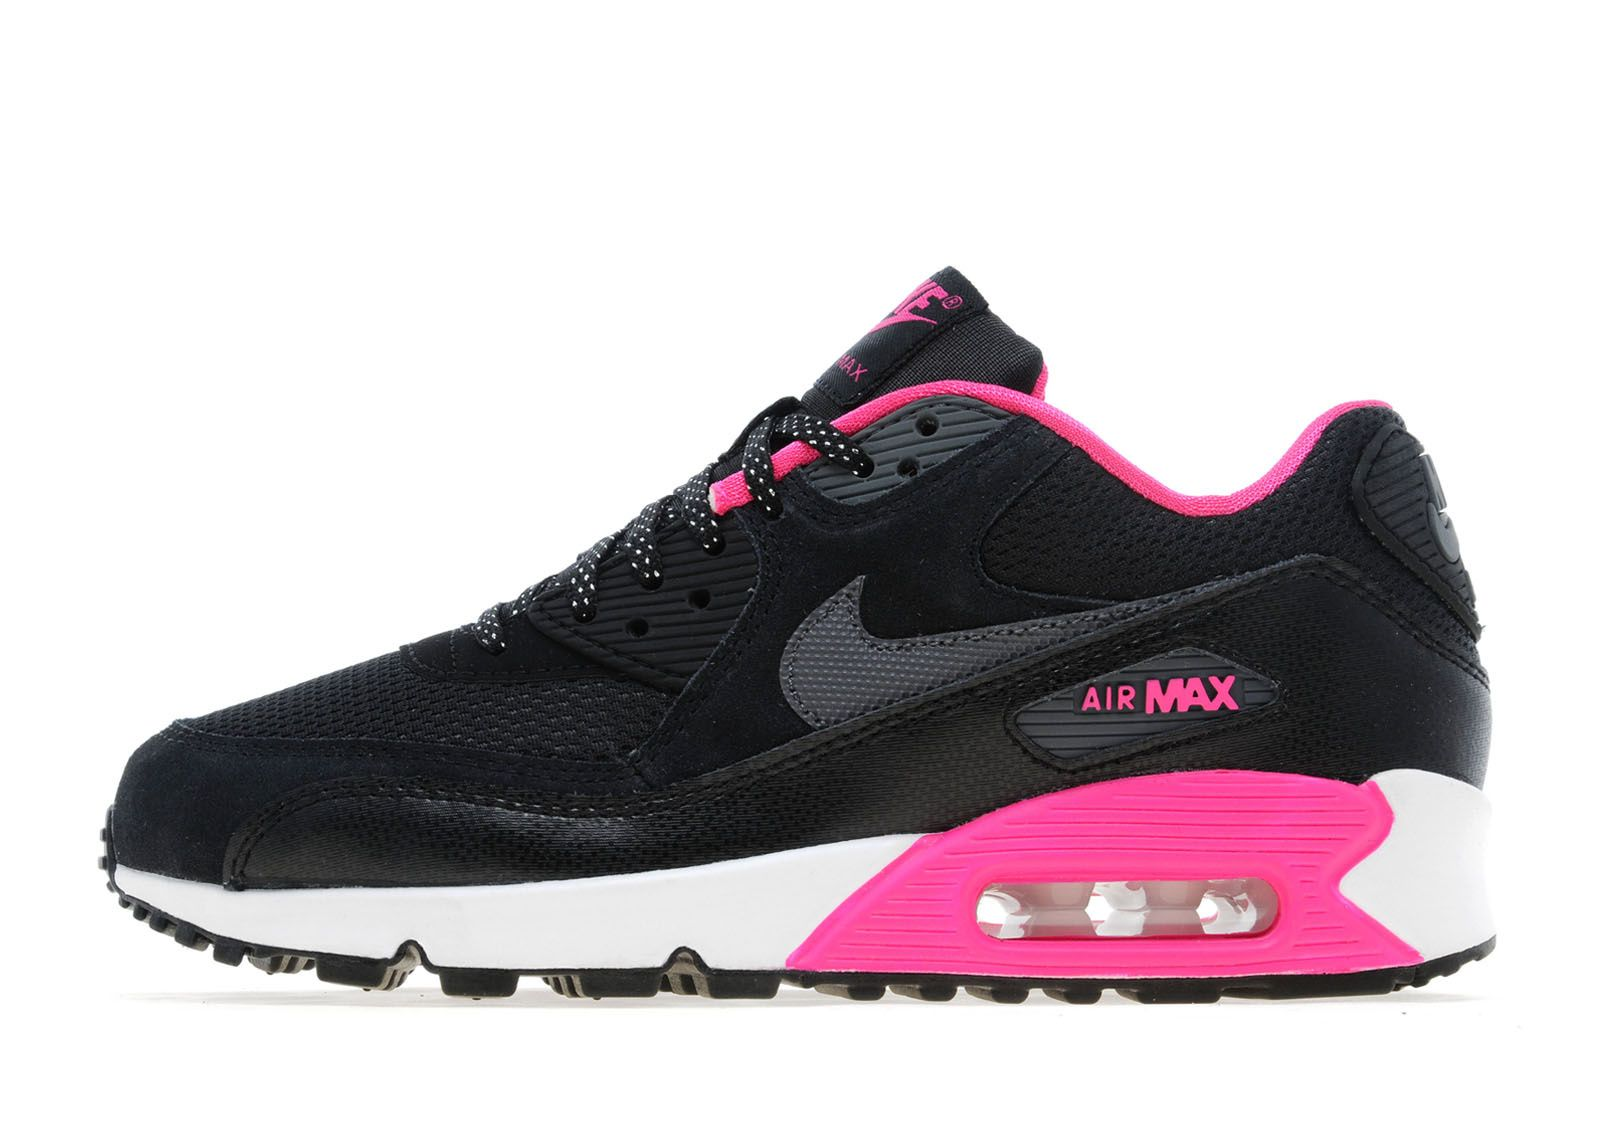 jd air max 90 junior The Go to Online Store For Cheap Nike ... 35319a01c